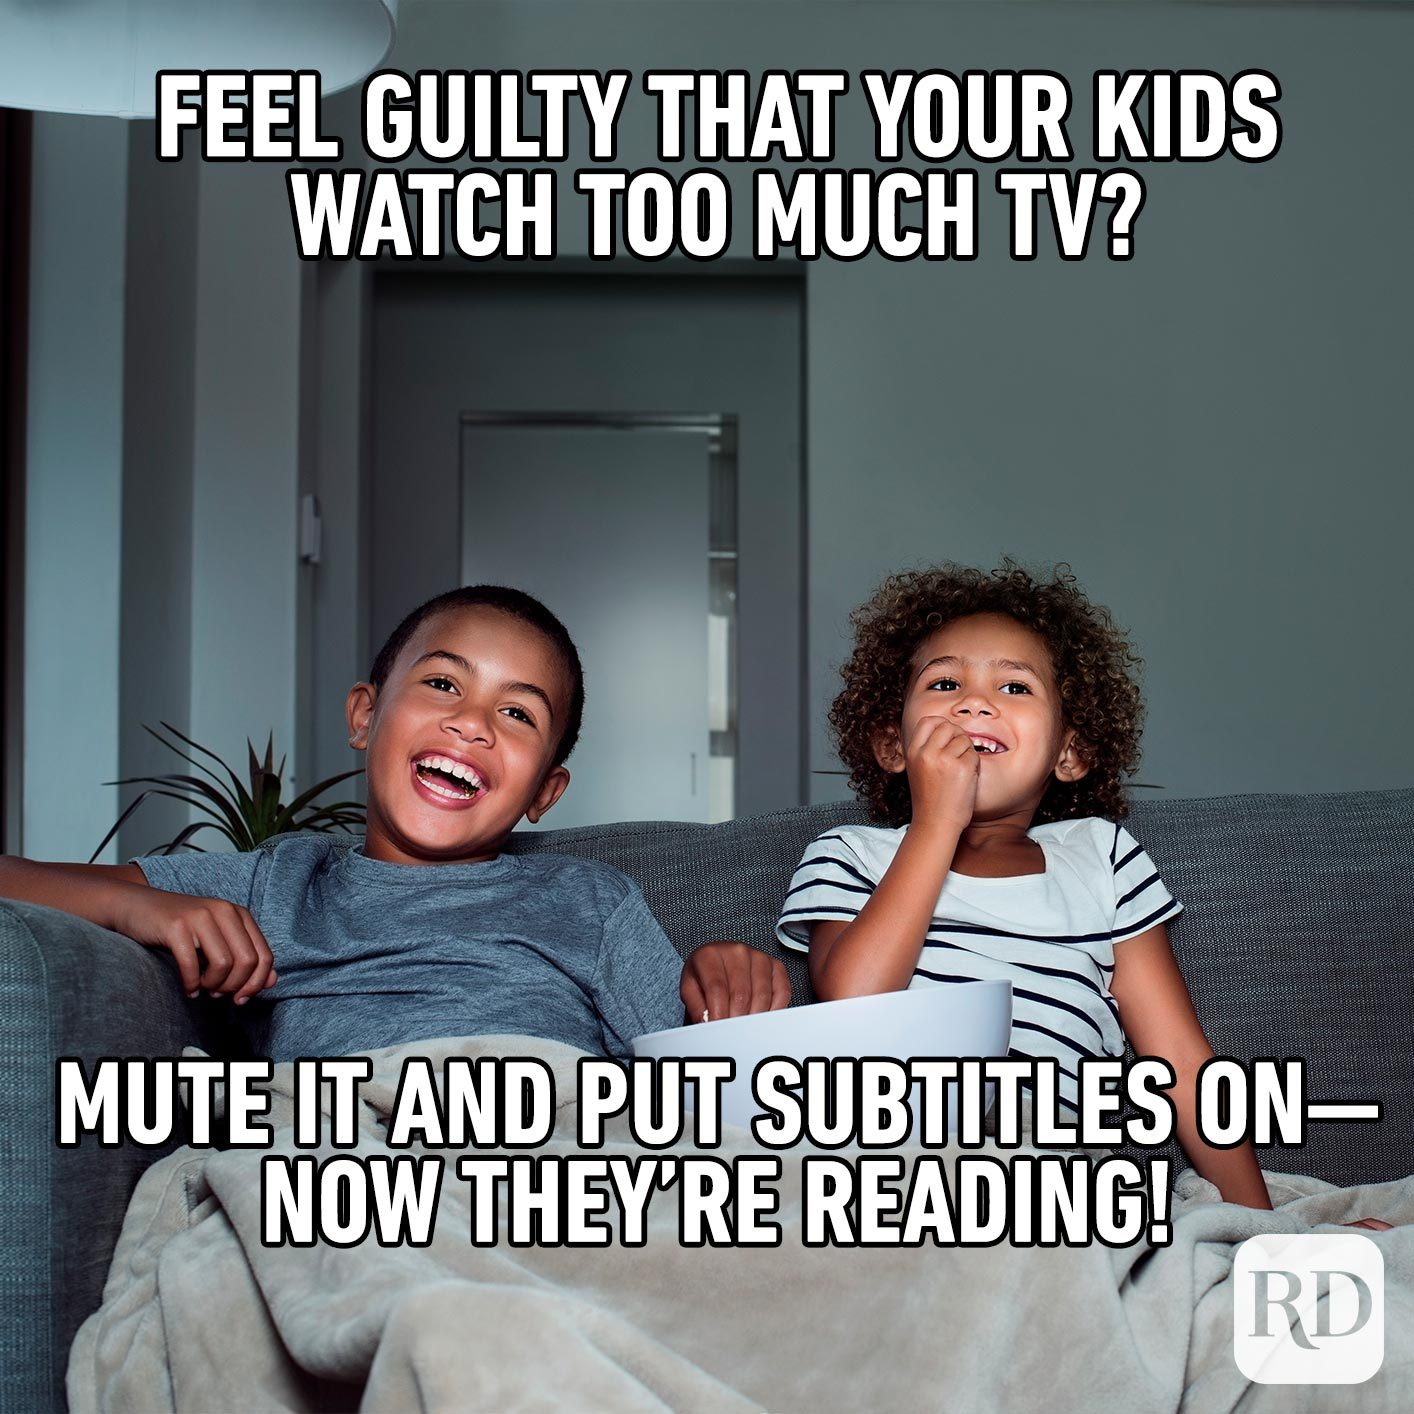 Two children in front of TV. MEME TEXT: Feel guilty that your kids watch too much TV? Mute it and put subtitles on—now they're reading!